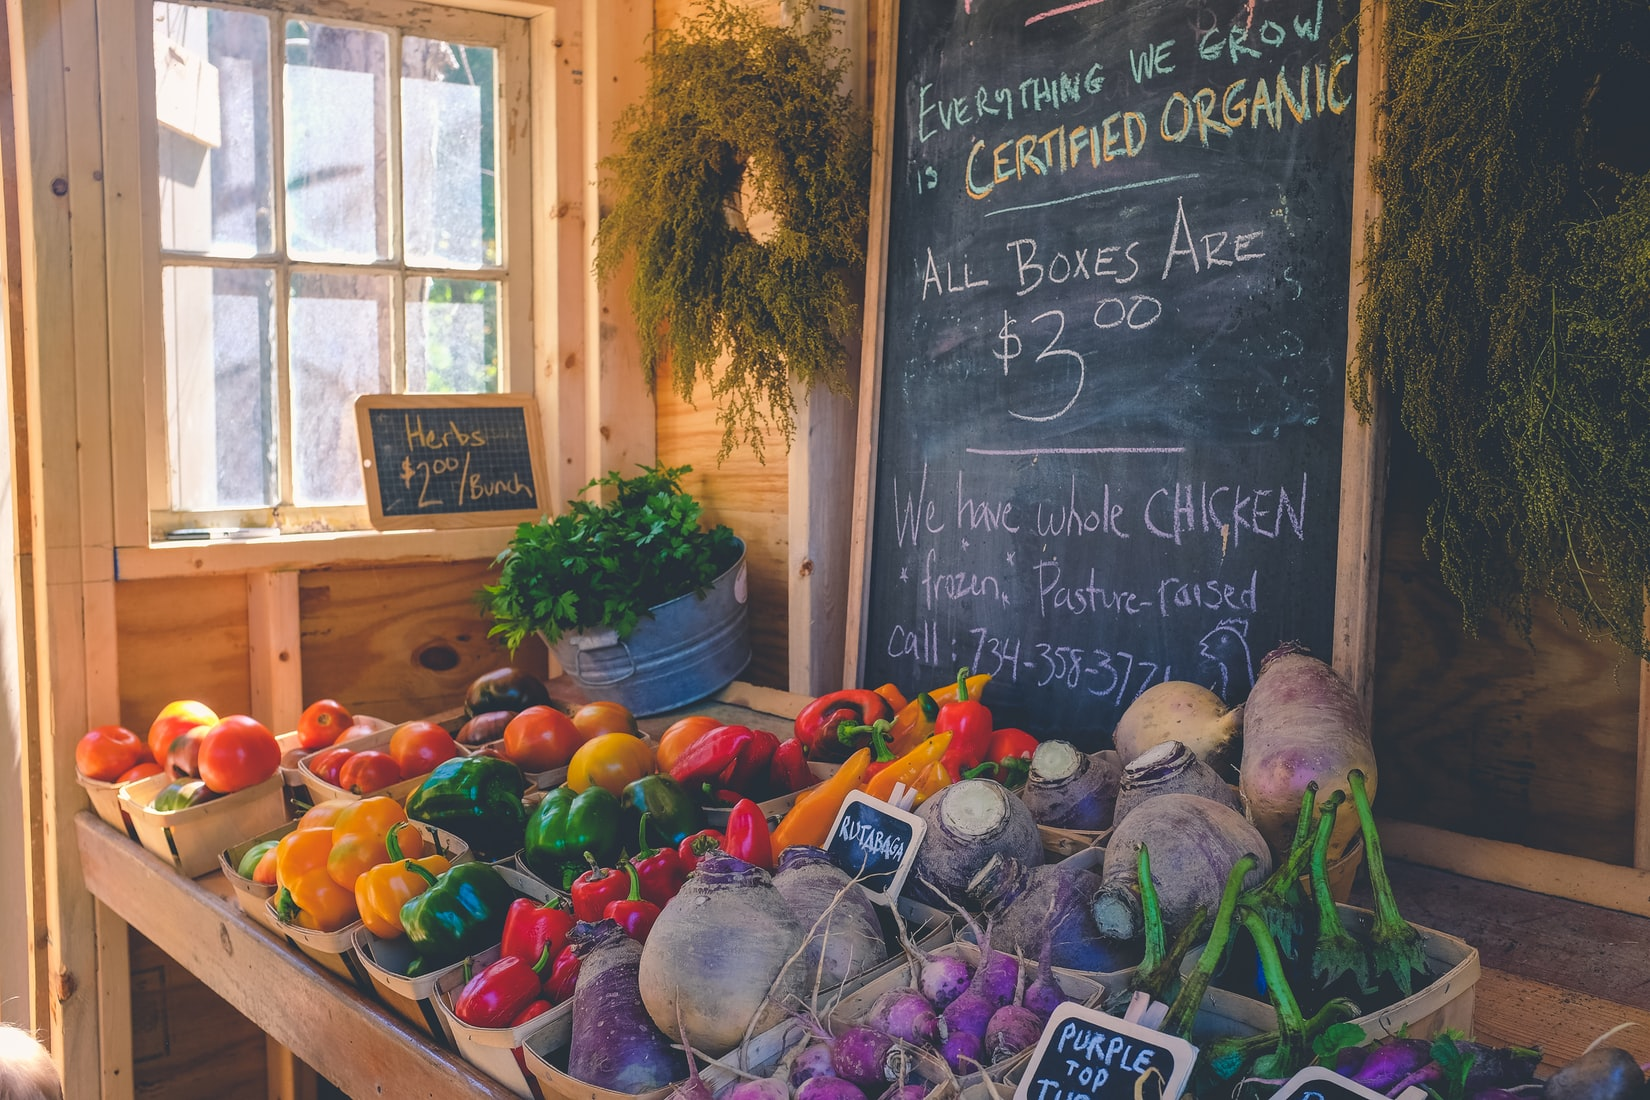 The Critical To-Do List for Organic Agriculture